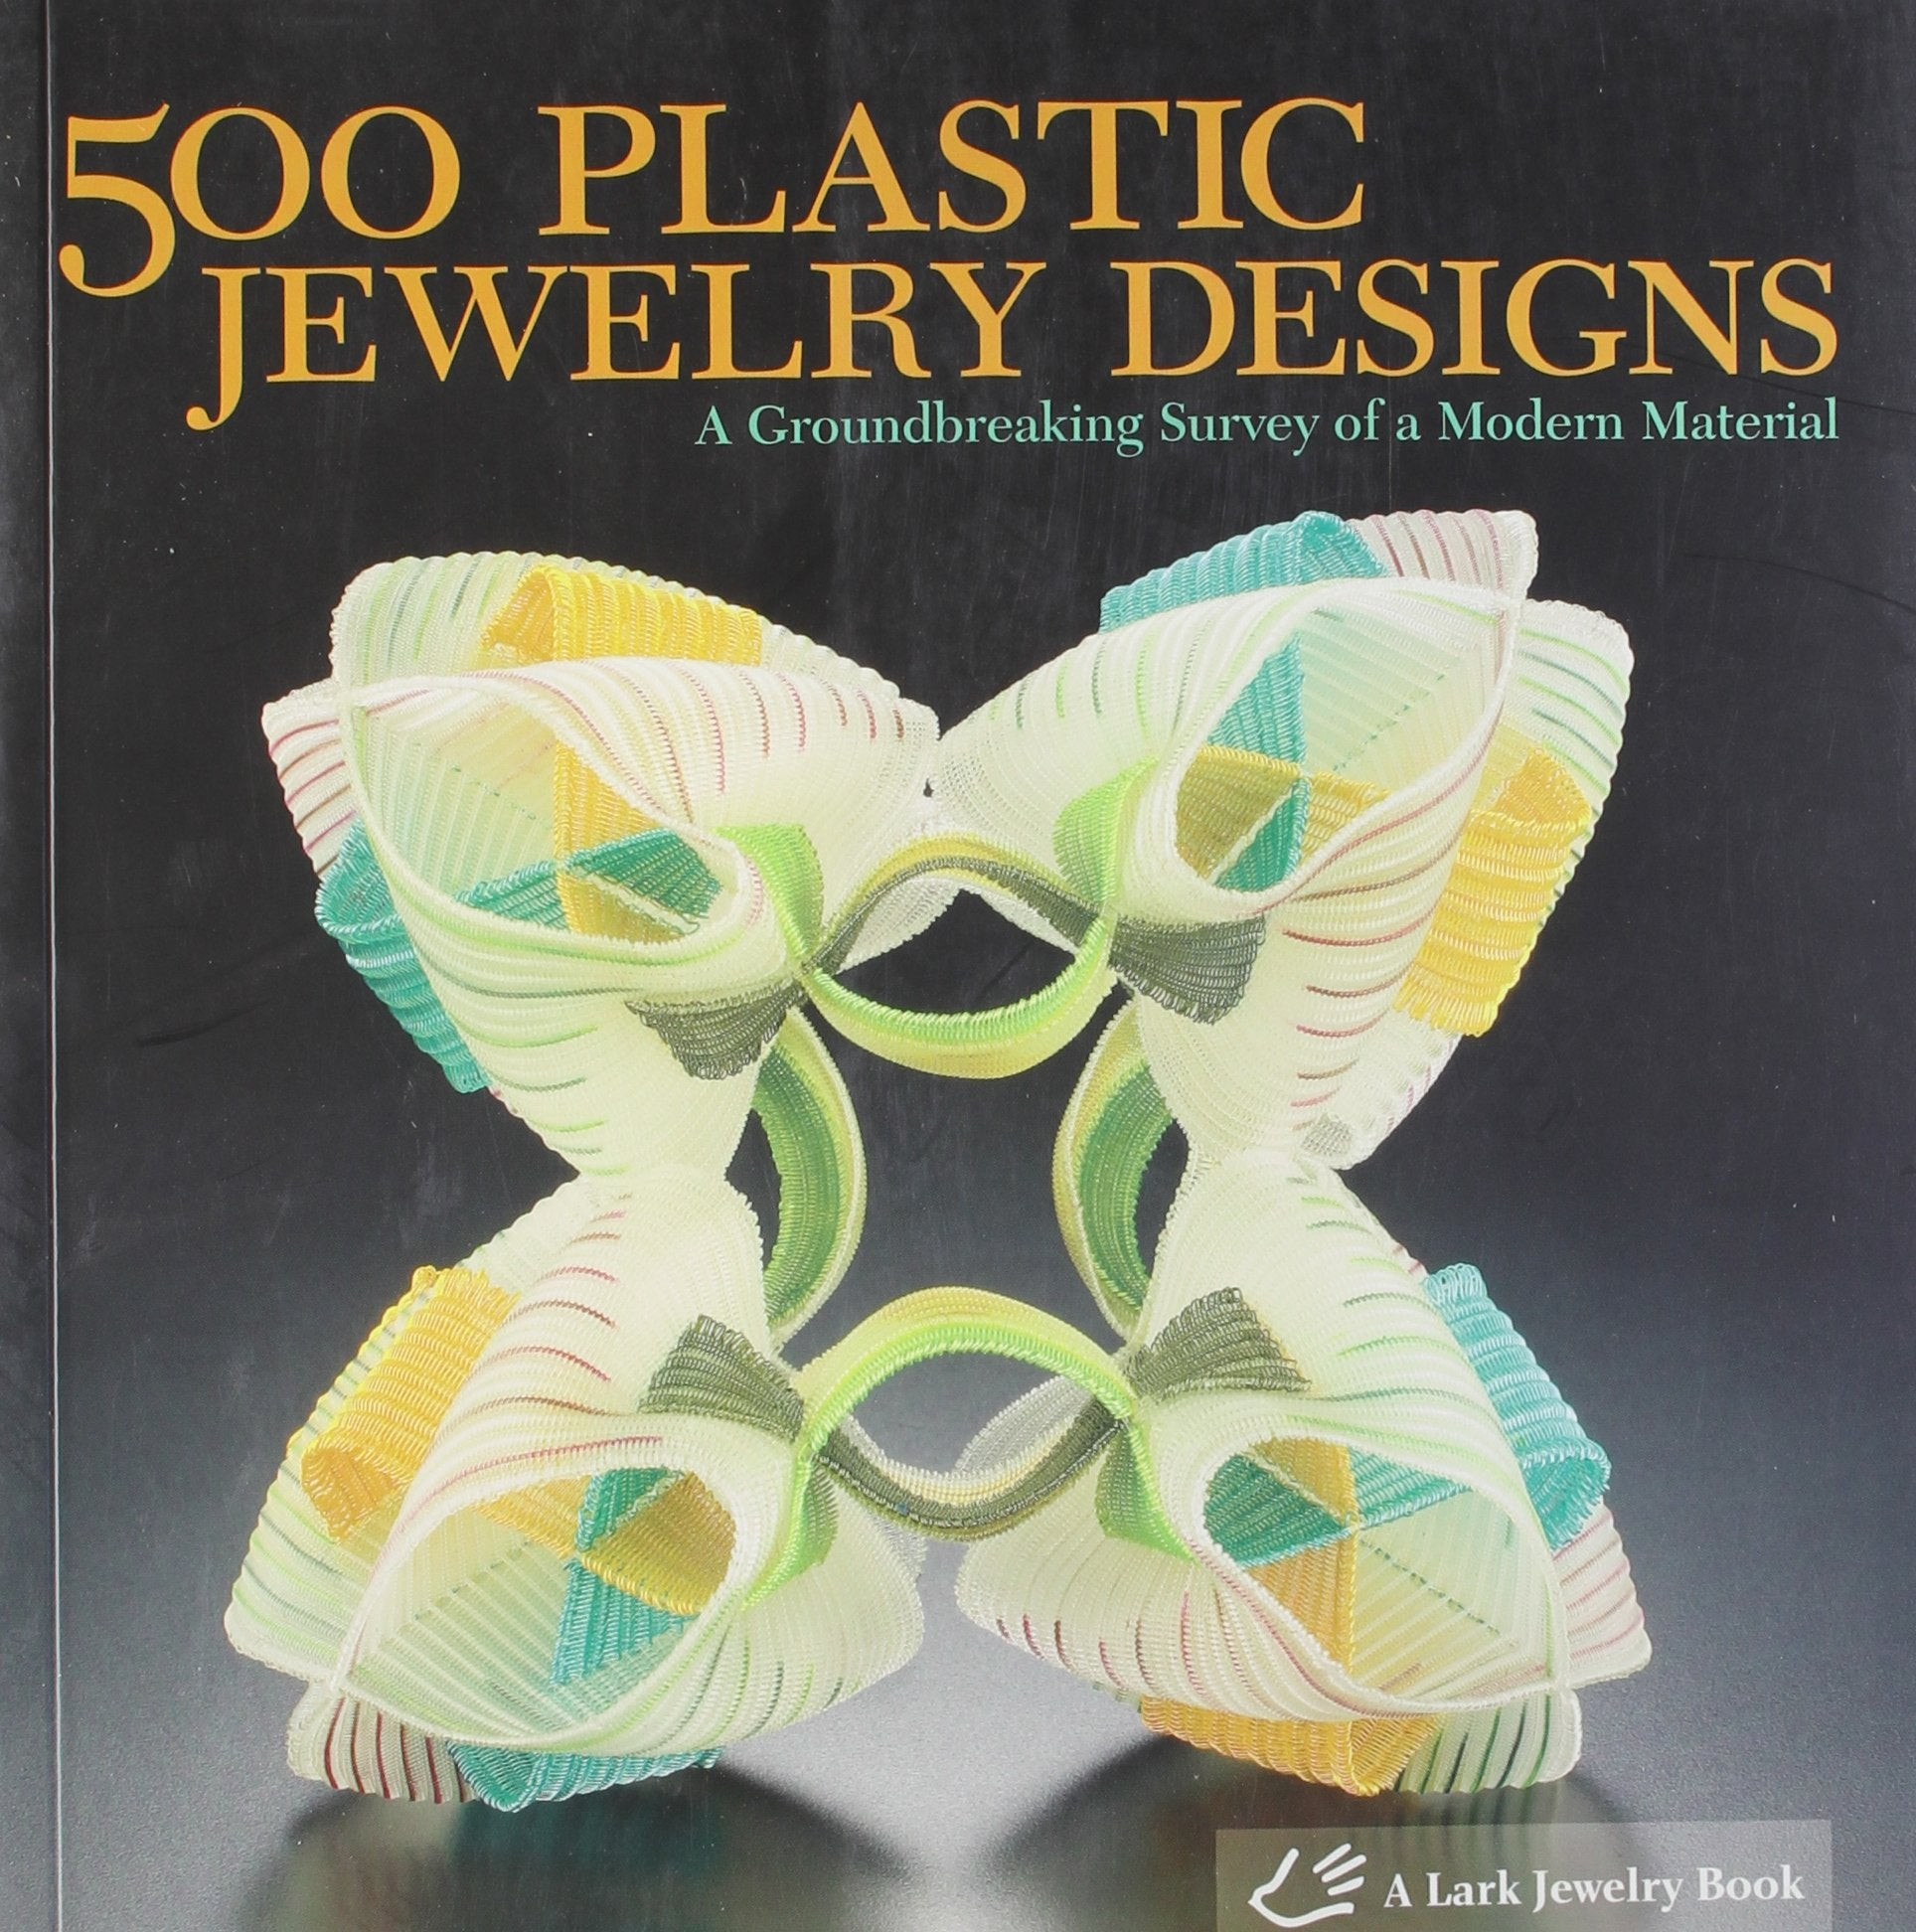 Jewelry Appearing in 500 Plastic Jewelry Designs